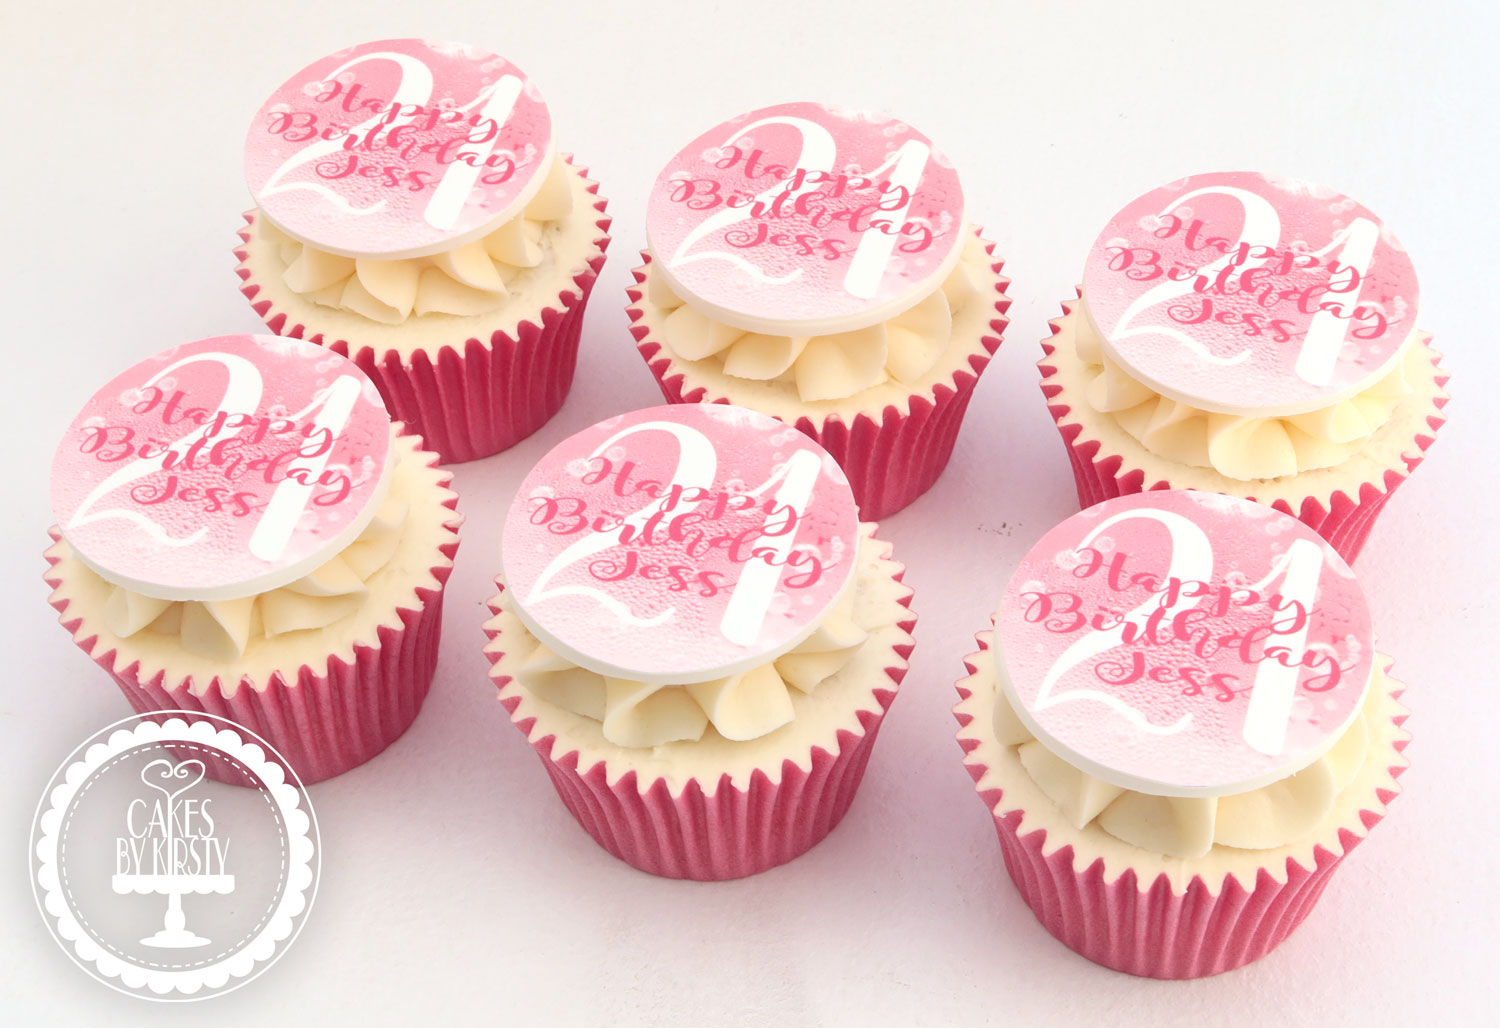 20210122 - Pink 21st Cupcakes